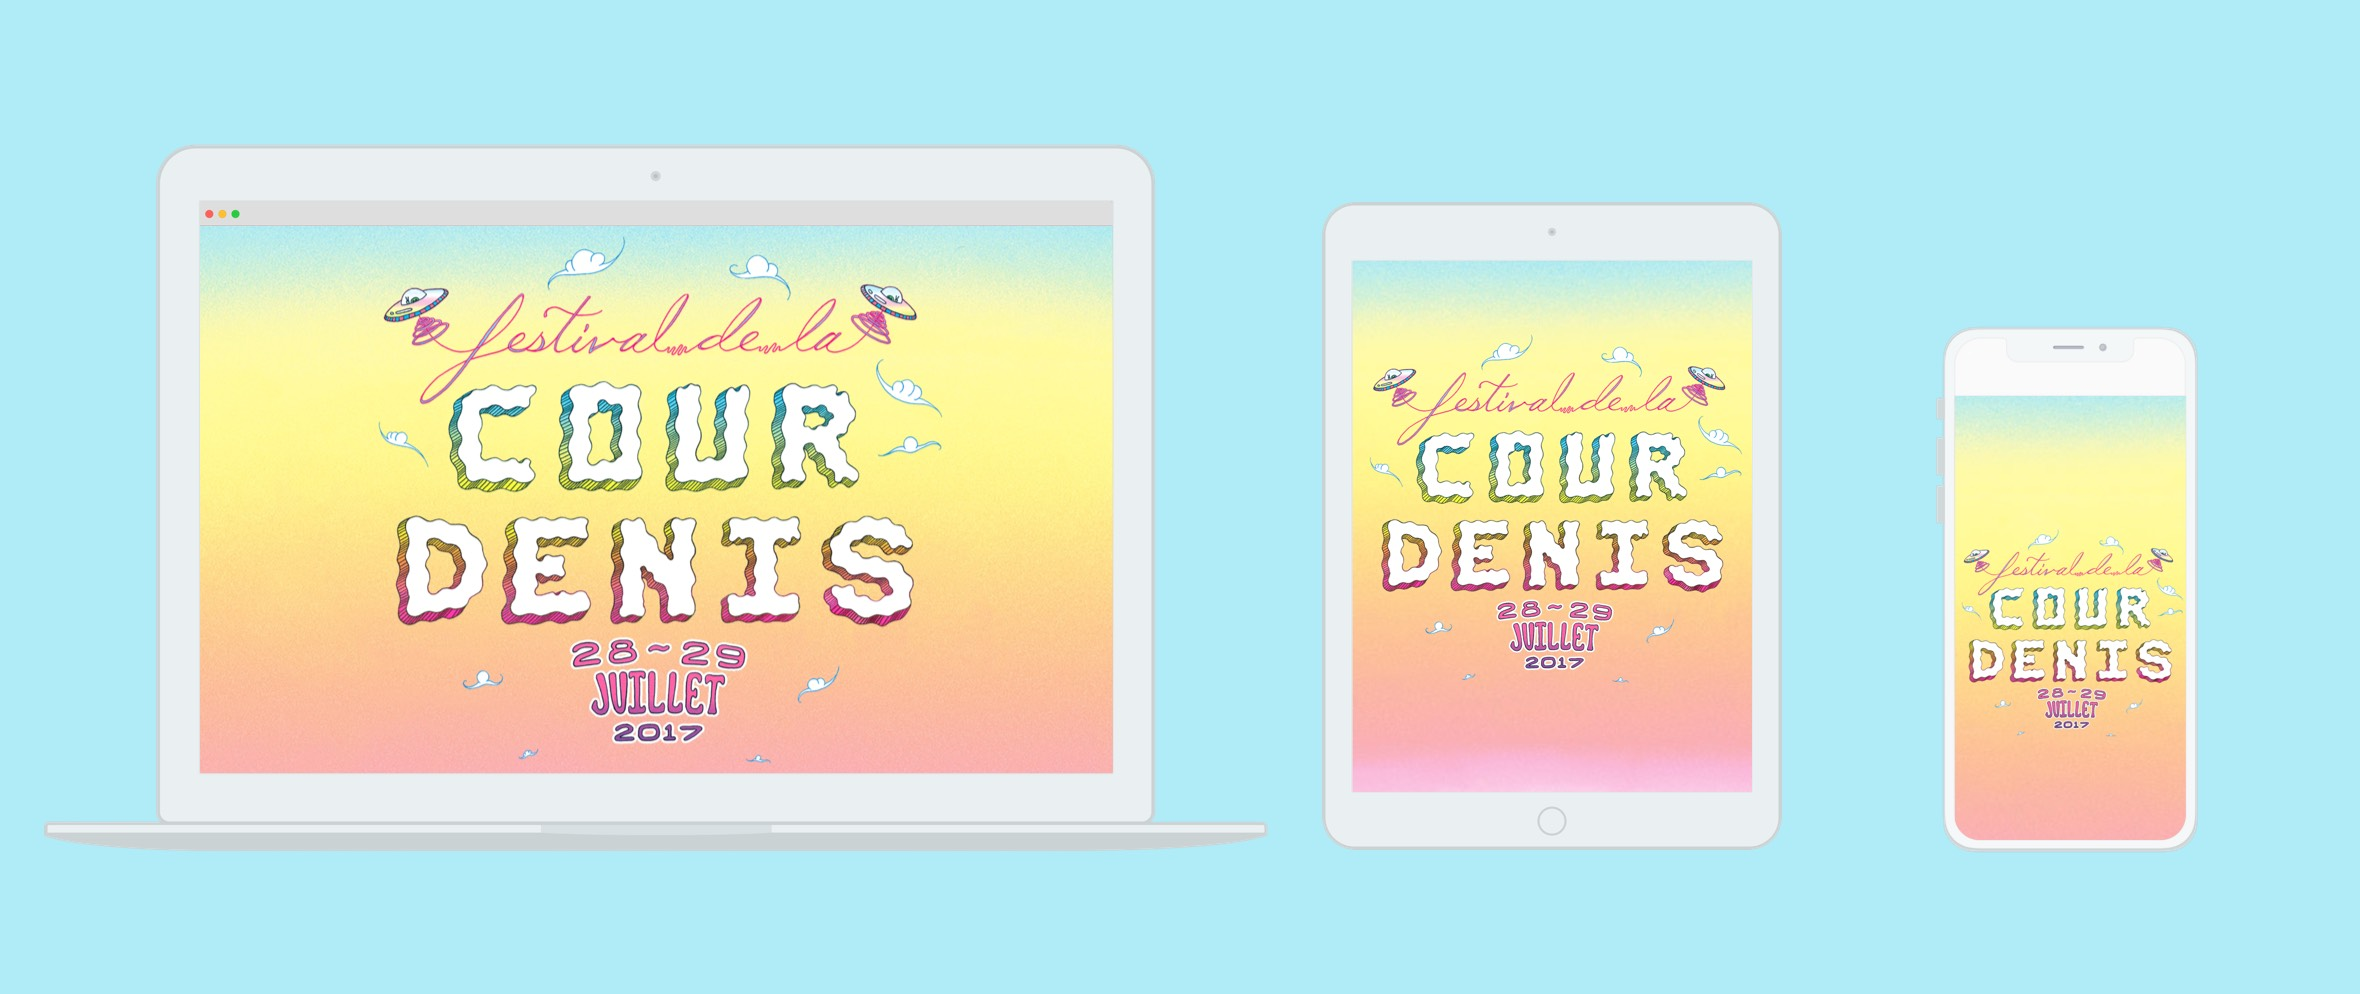 Laptop, tablet and smartphone displaying Festival de la Cour Denis 2017 website with illustration